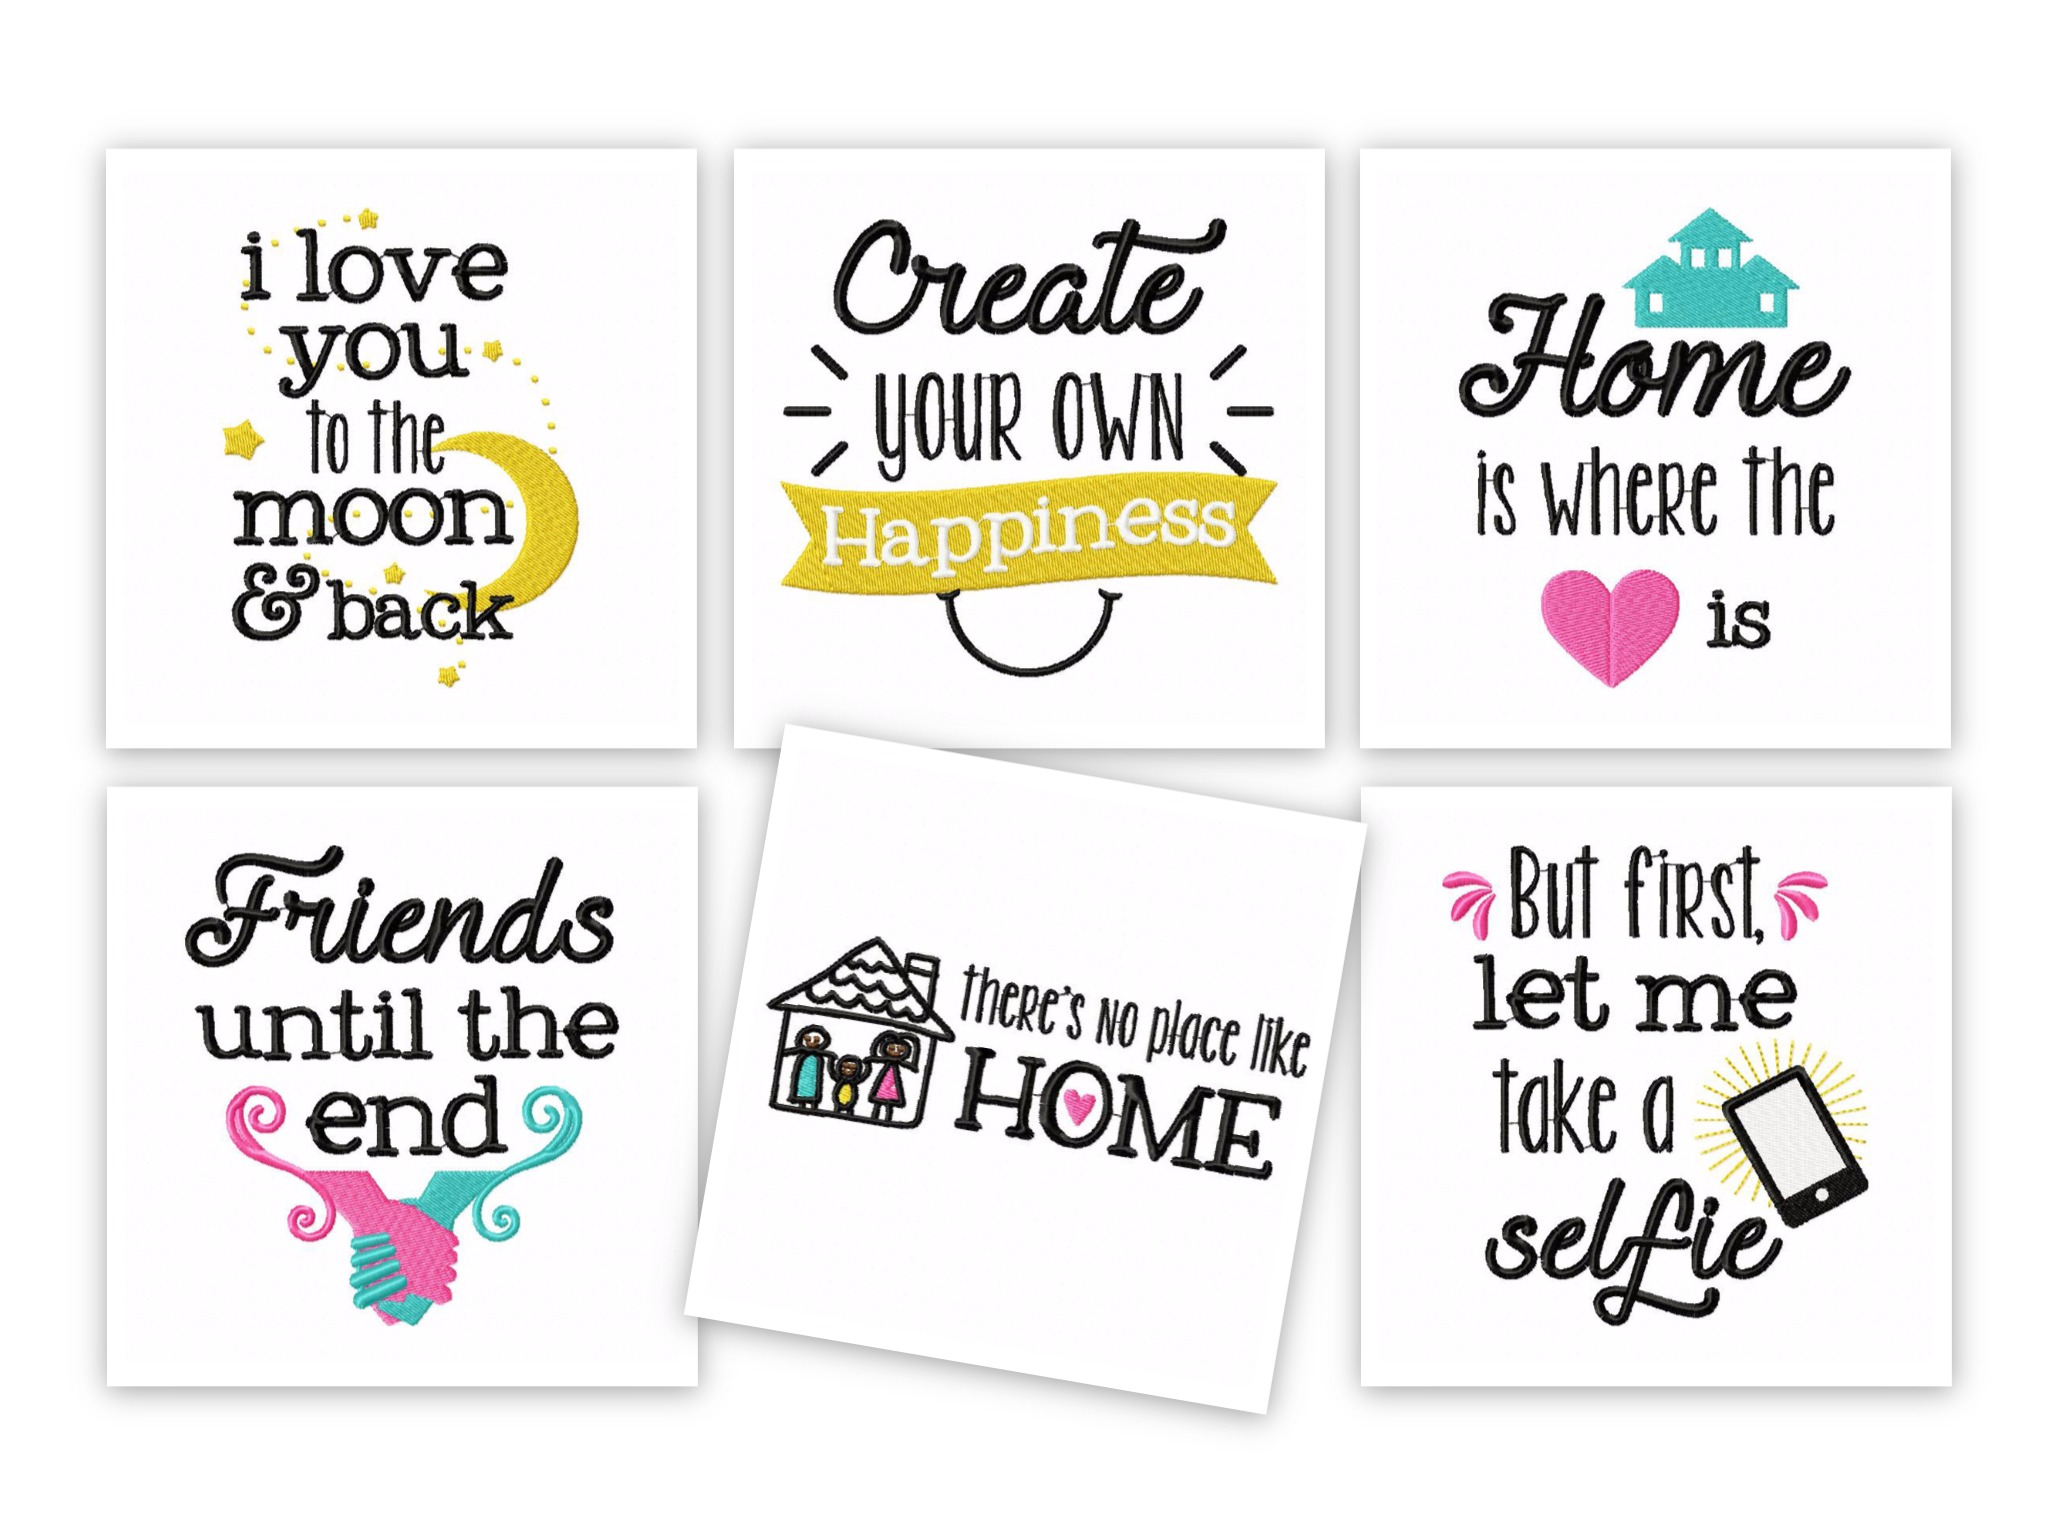 Friends Family Quotes 12 Machine Embroidery Designs Embroidery